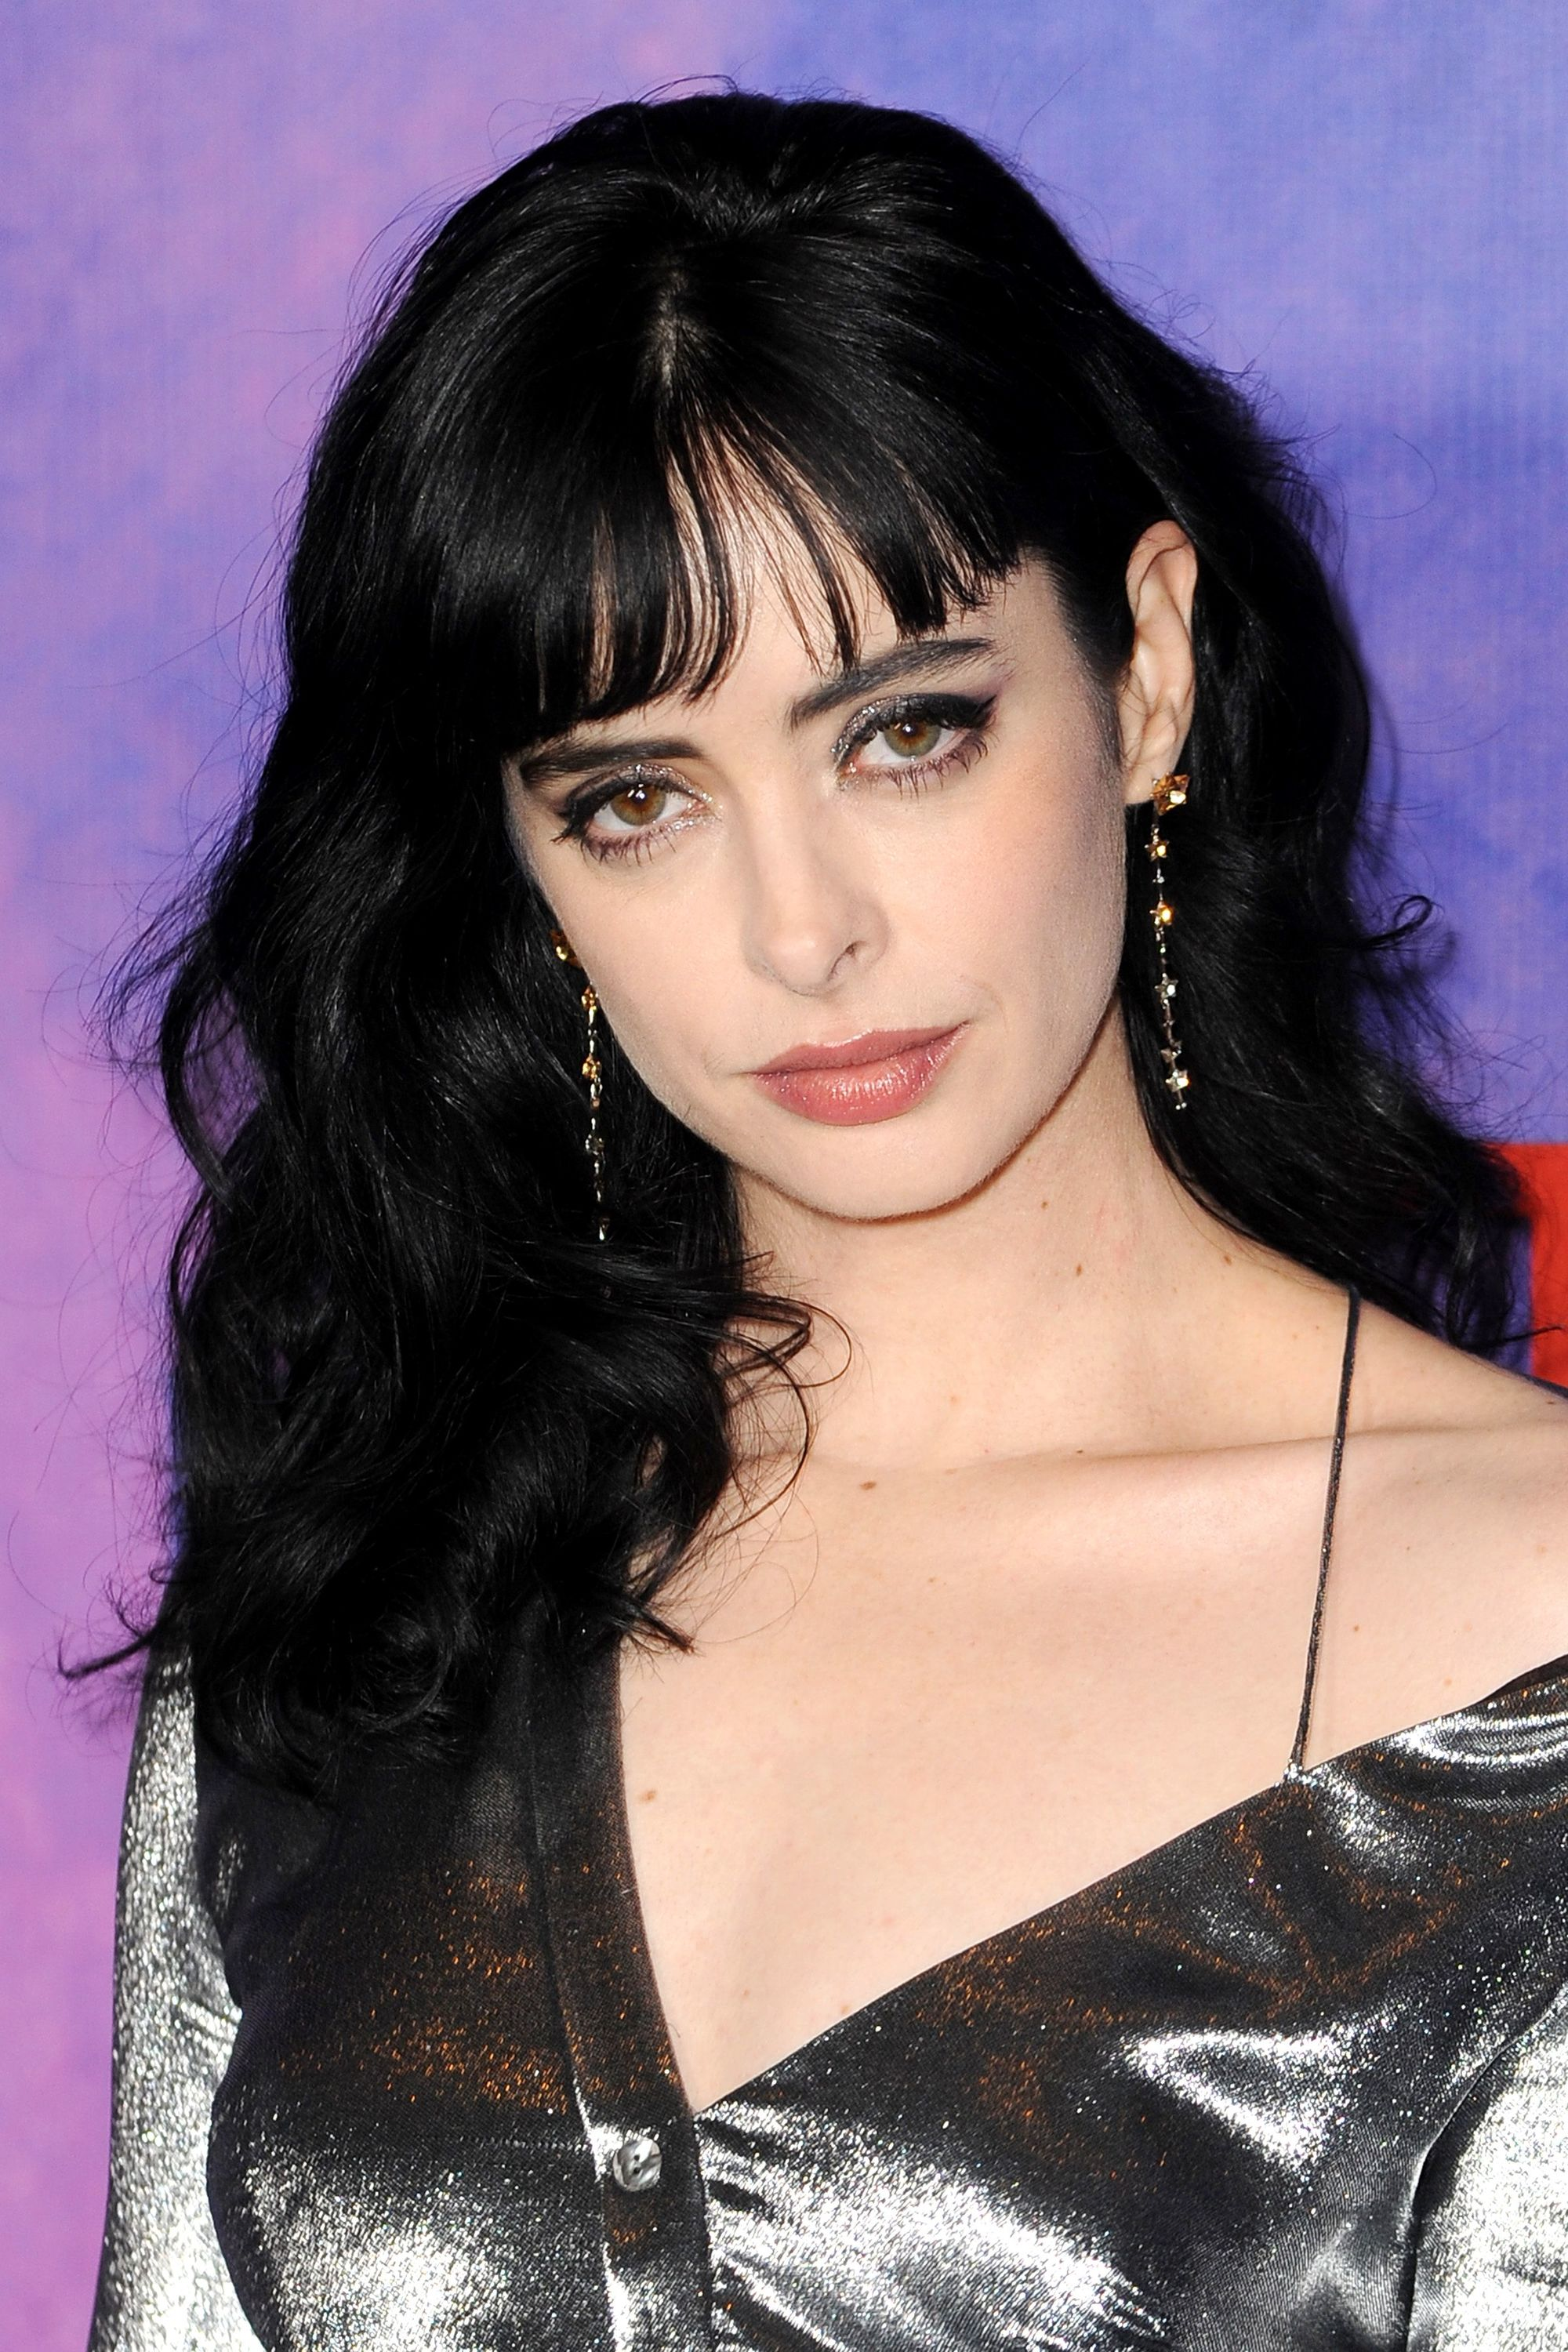 Medium hairstyles for thick hair: Krysten Ritter with mid-length dark brown wavy hair with bangs